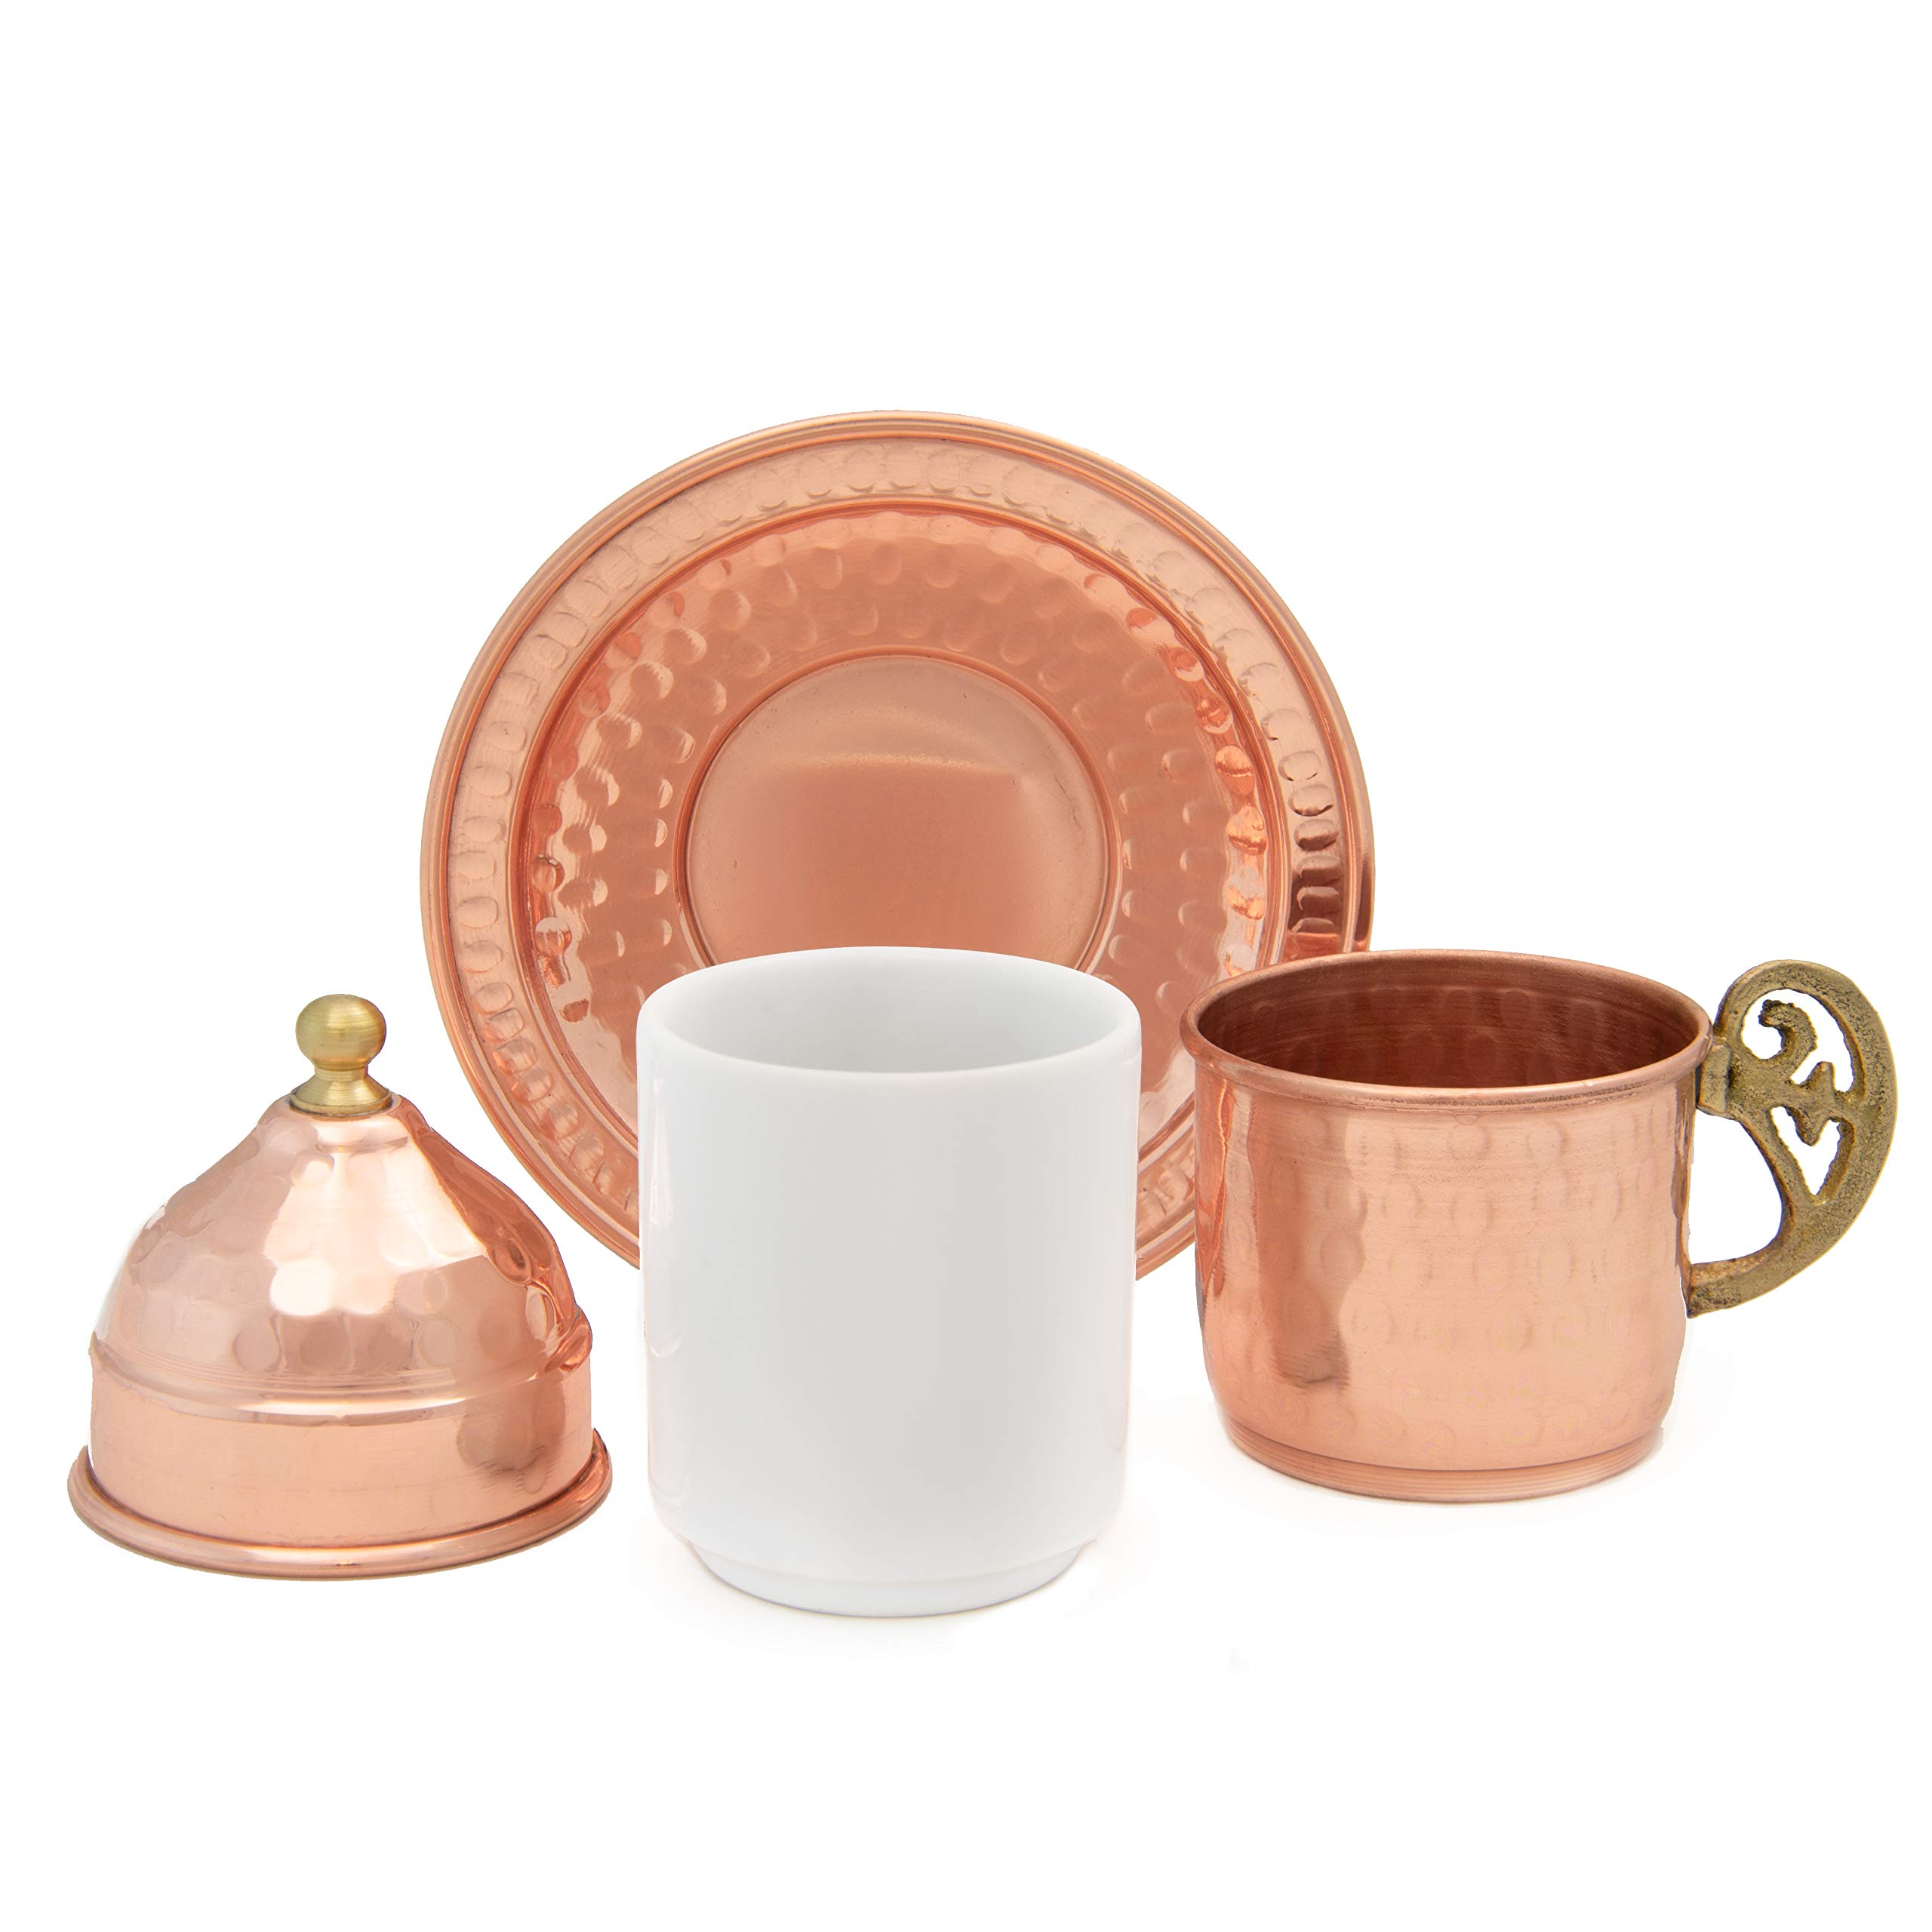 Handmade Copper Turkish Coffee Set of 6 Cups with Cezve, Saucers, Serving Bowl with Tray – Decorative Handcrafted Ottoman Style Demitasse 28pc Gift Pack Kit with Armenian Espresso Mugs, Arabic Dish by Mandalina Magic (Image #4)